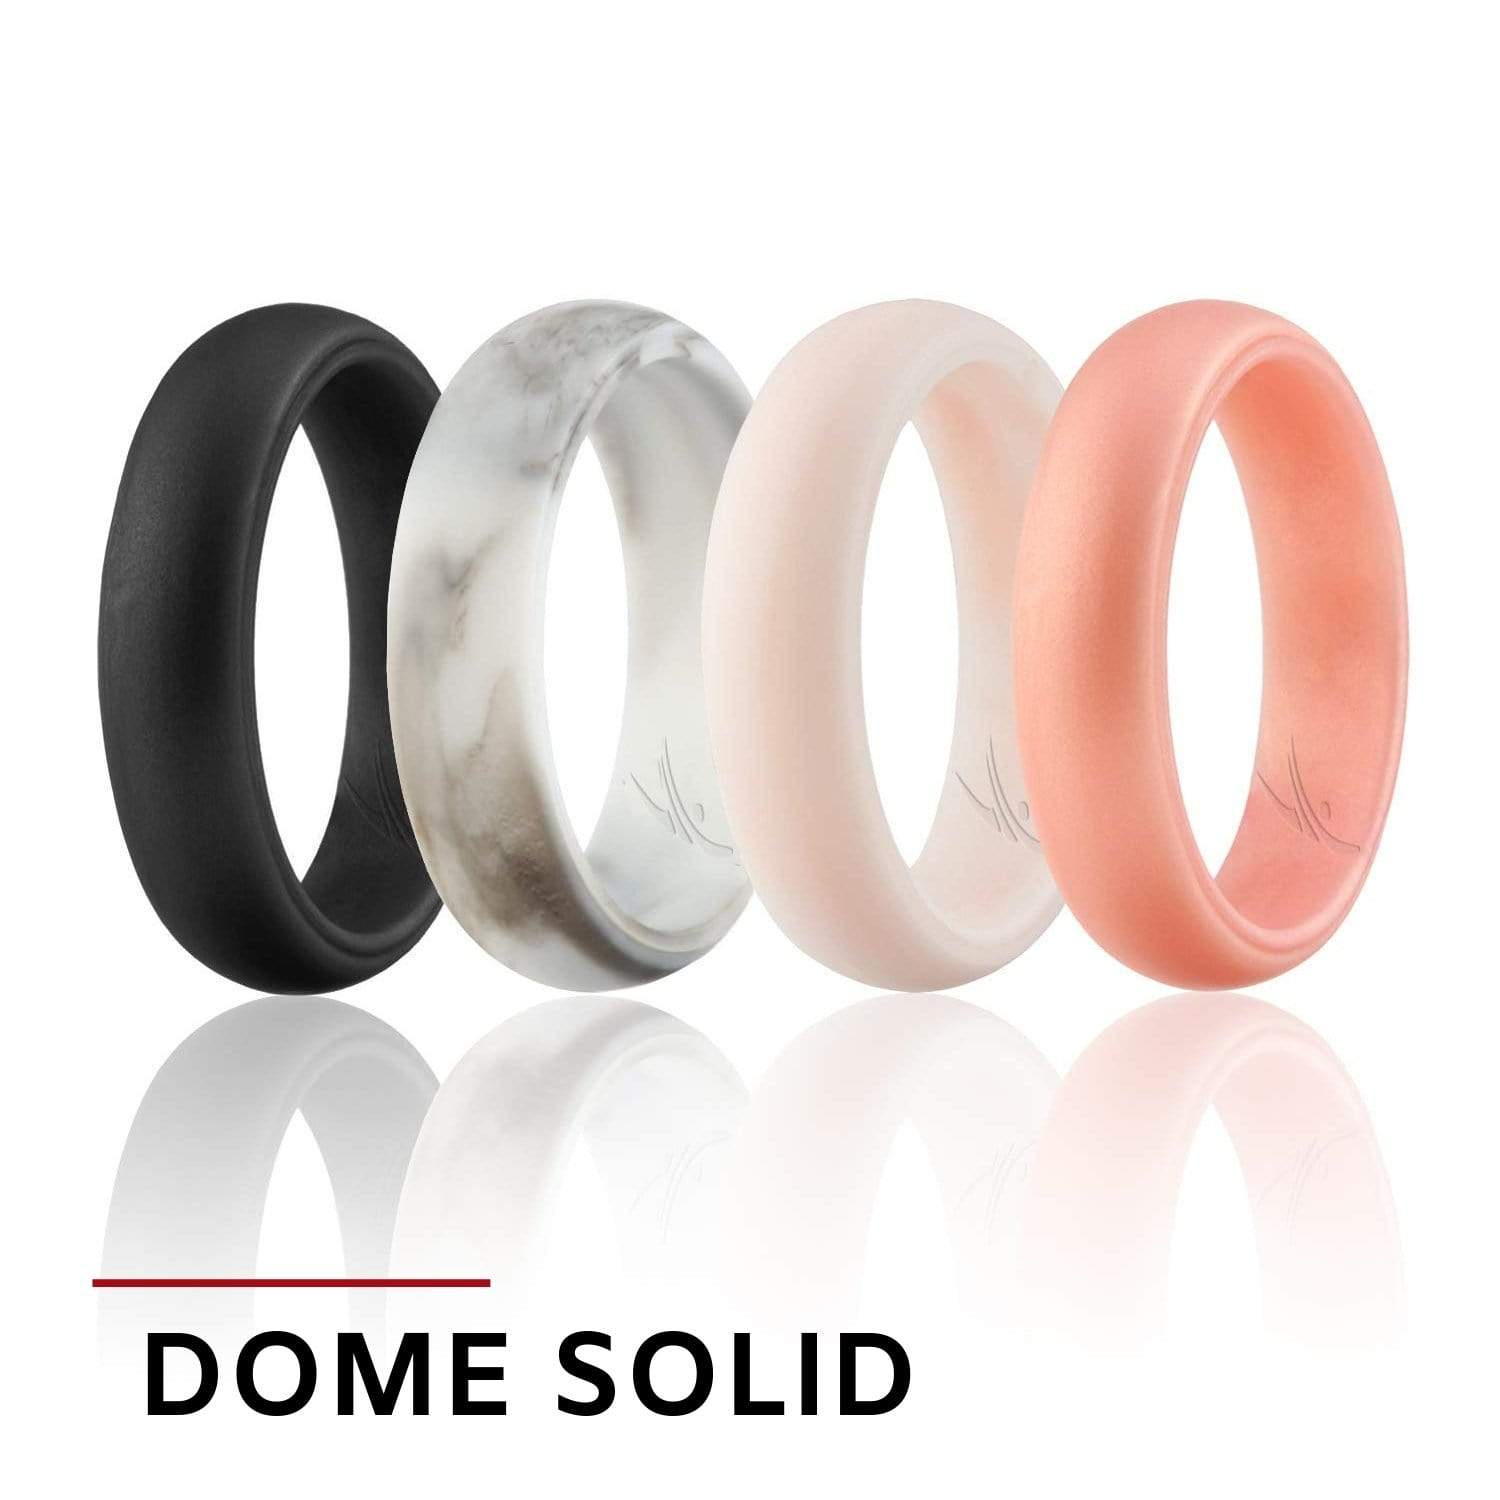 Silicone Wedding Ring.Roq Silicone Rings Shop Affordable Rubber Silicone Wedding Bands